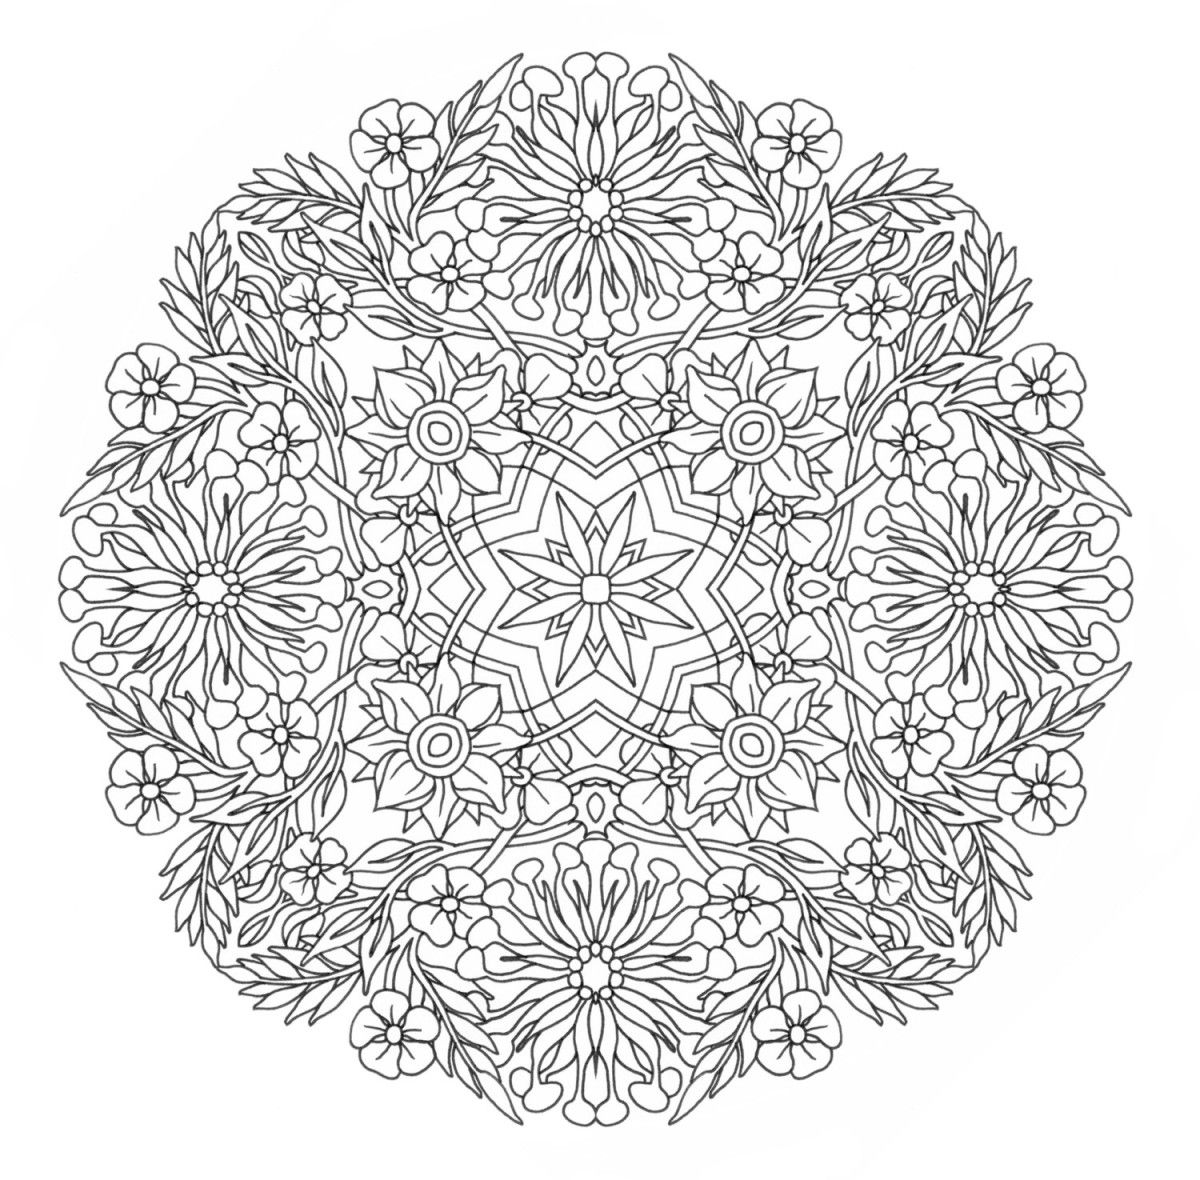 Adult coloring pictures google - Adult Coloring Pages Google Search